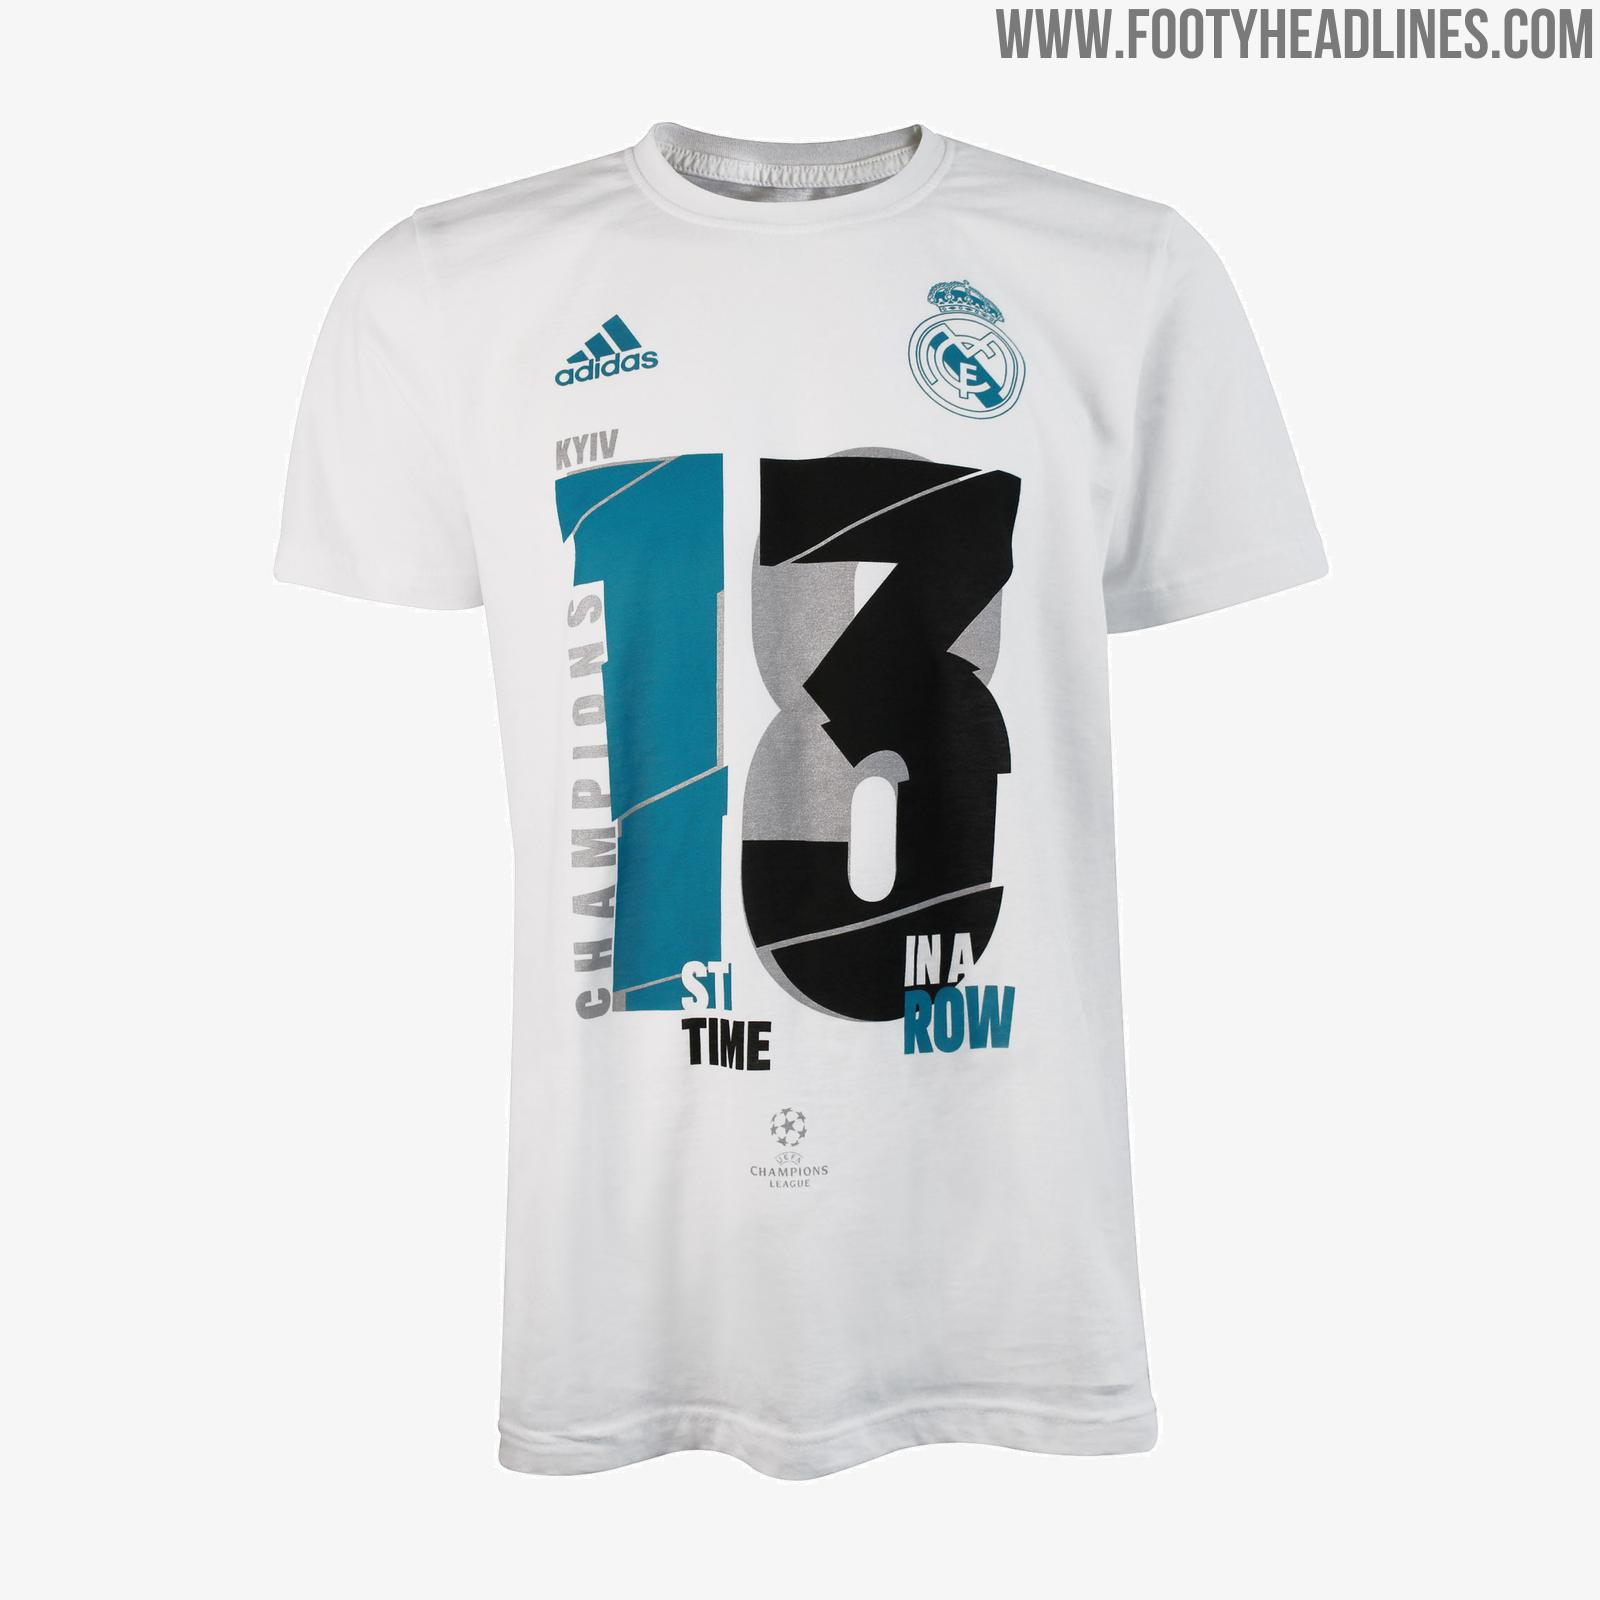 real madrid 2018 champions league winners tee collection released footy headlines. Black Bedroom Furniture Sets. Home Design Ideas